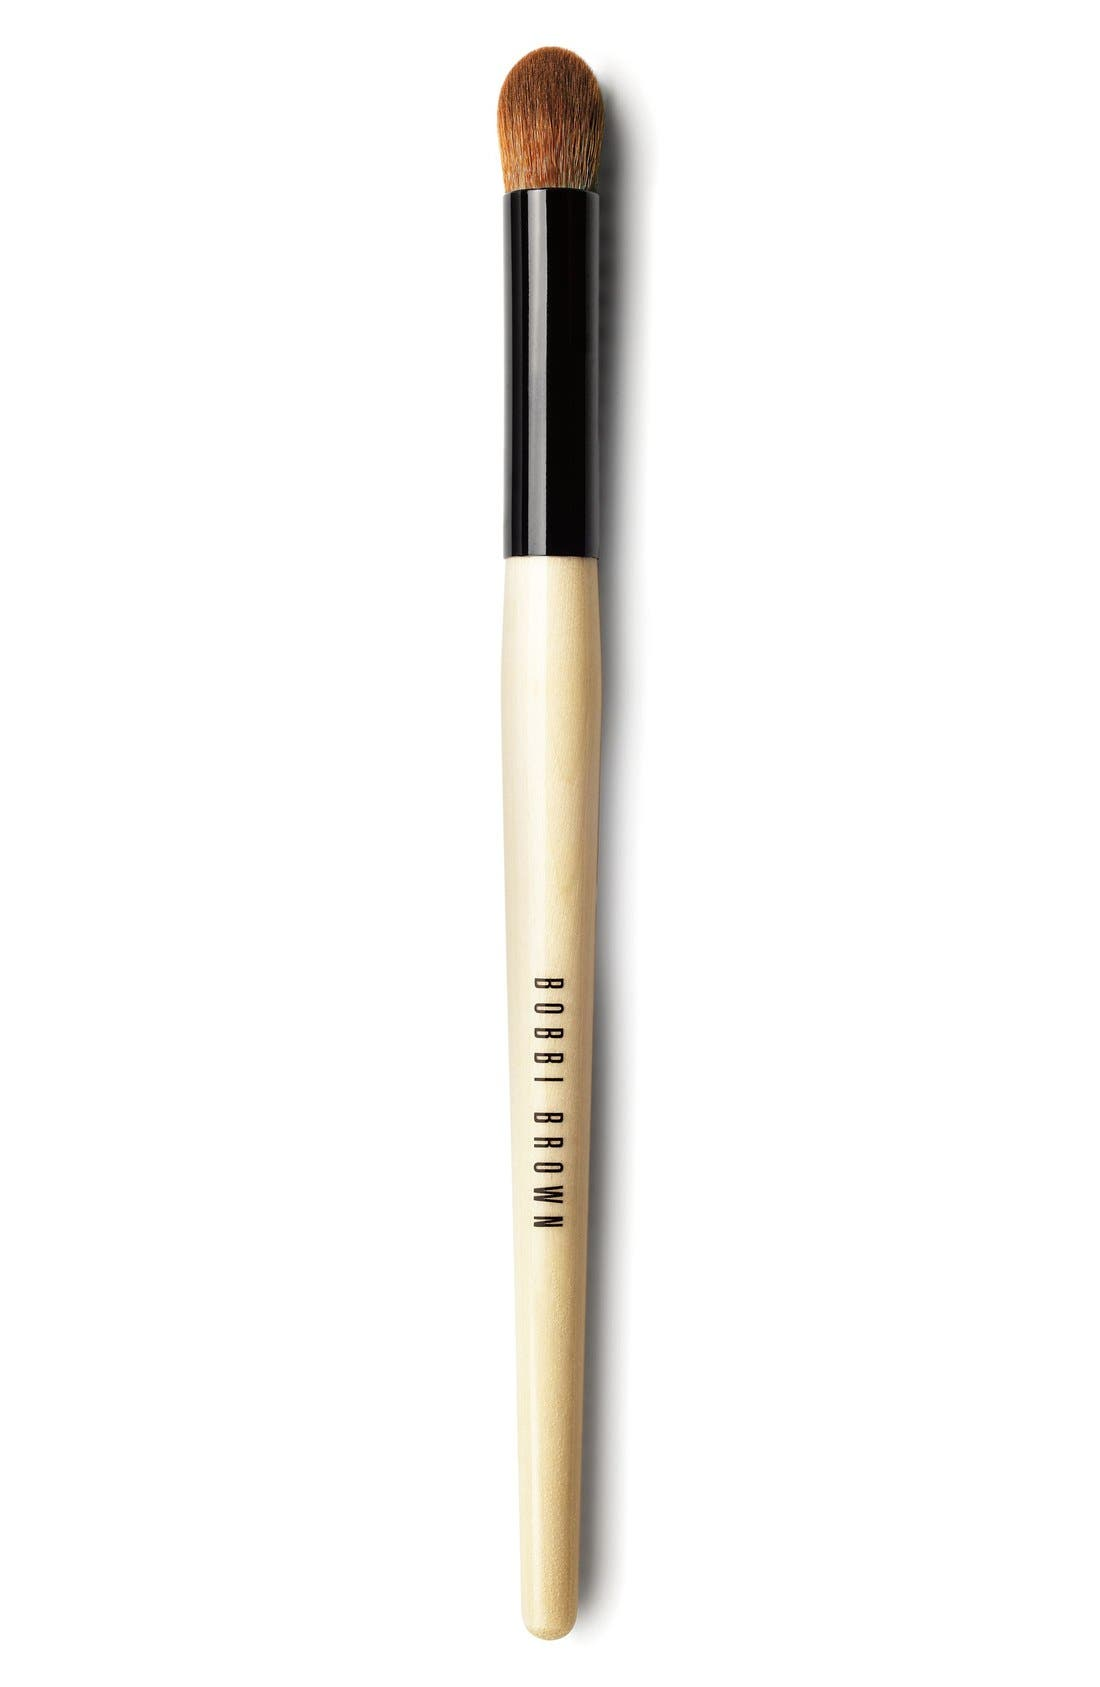 Bobbi Brown Full Coverage/Face Touch-Up Brush